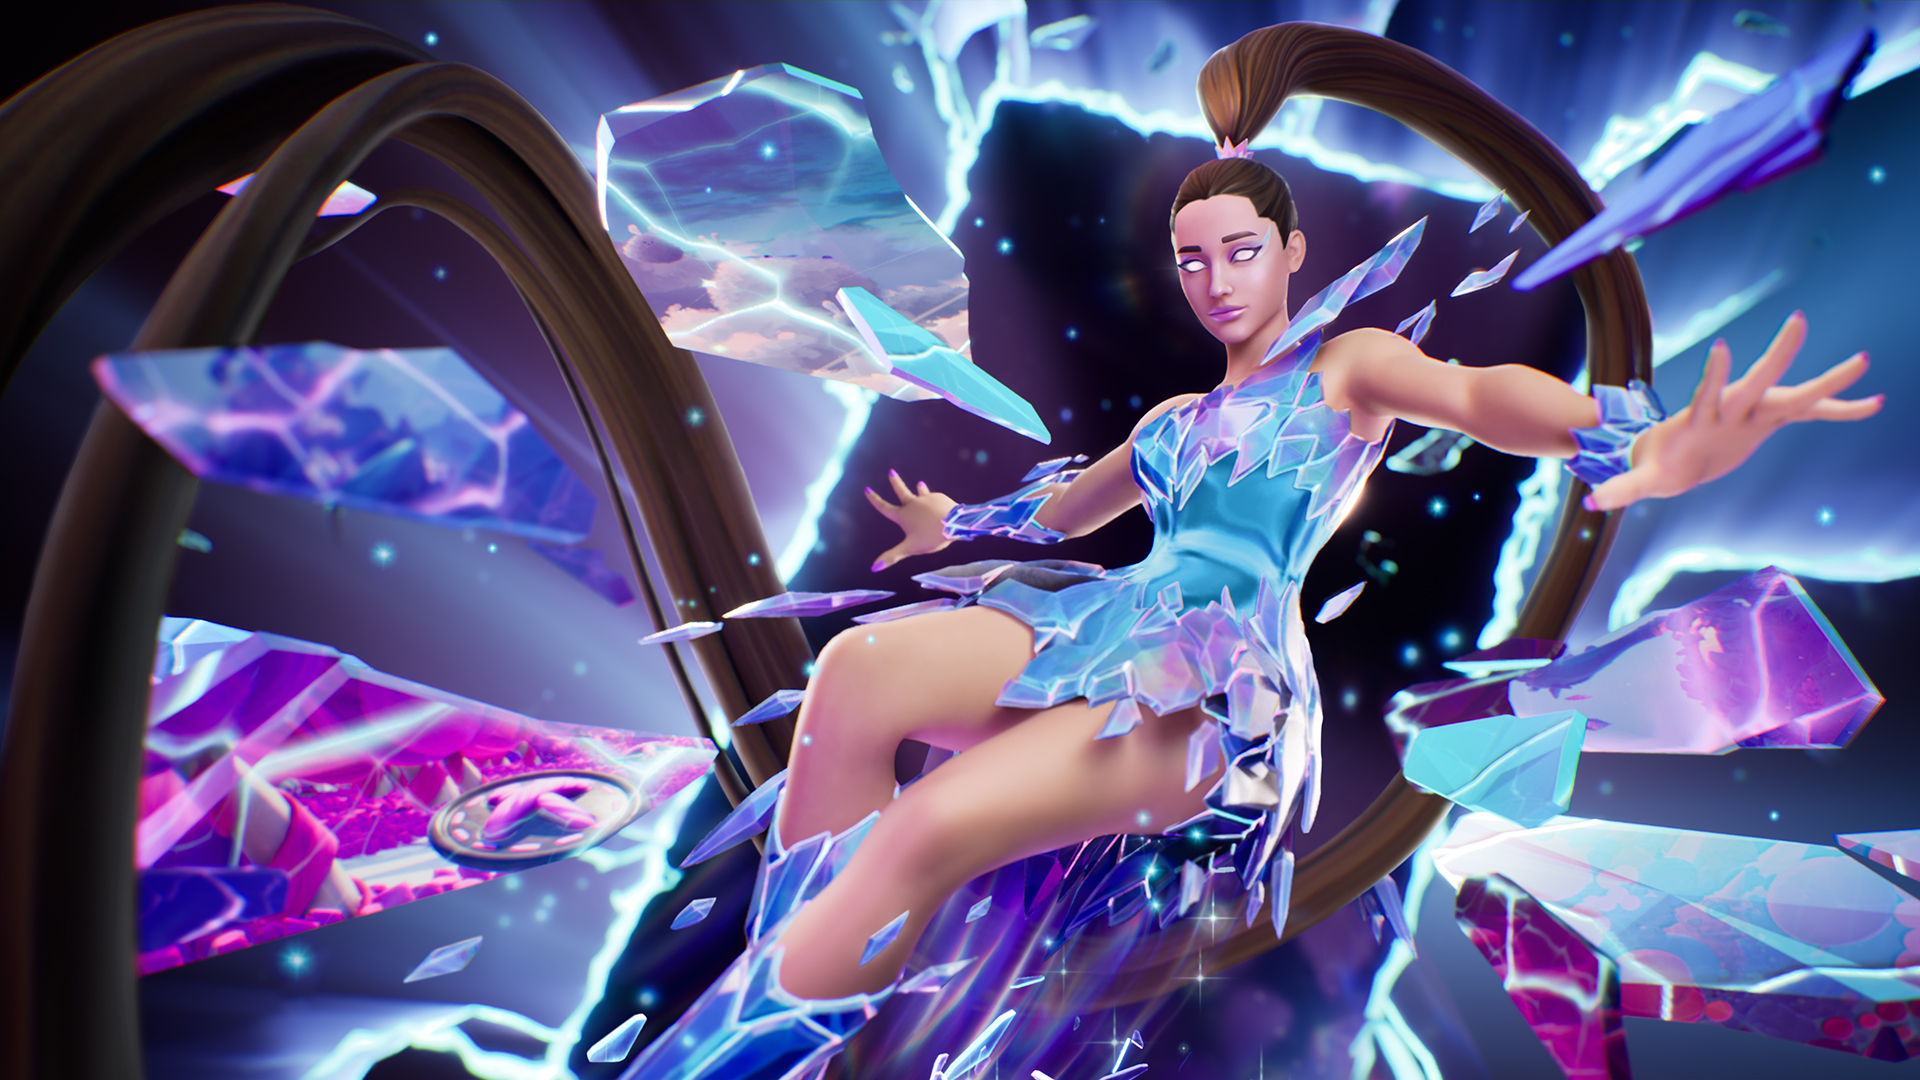 Ariana Grande in her Rift Tour outfit for Fortnite